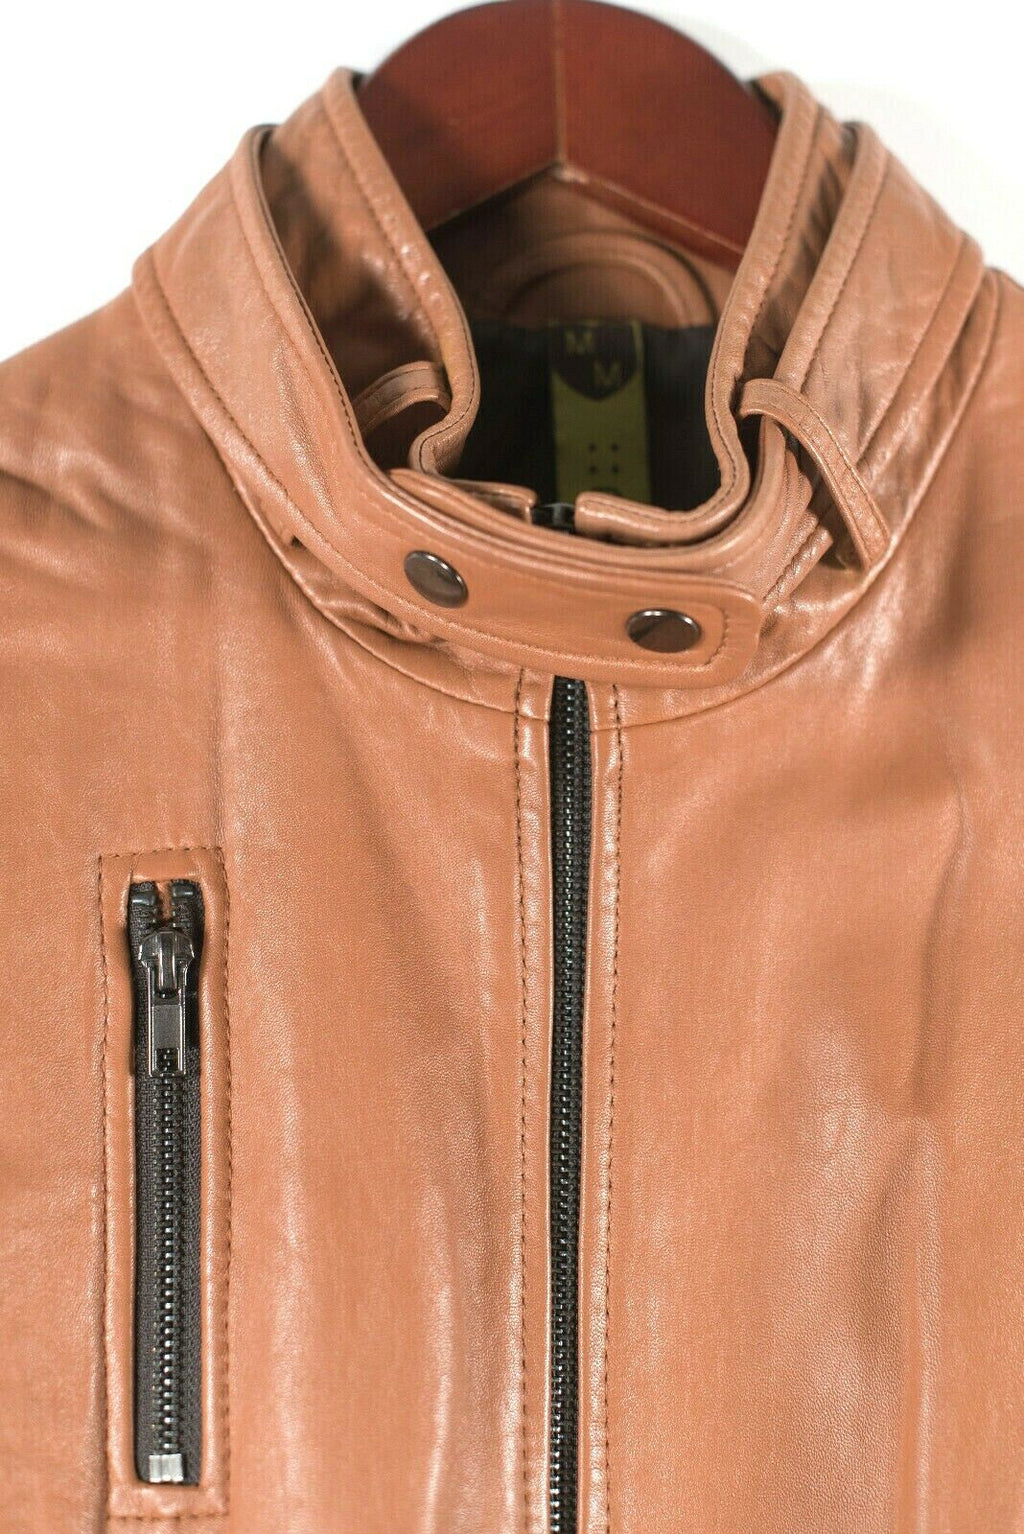 Soia & Kyo Womens Medium Cinnamon Brown Motorcycle Jacket Leather Pocket Coat